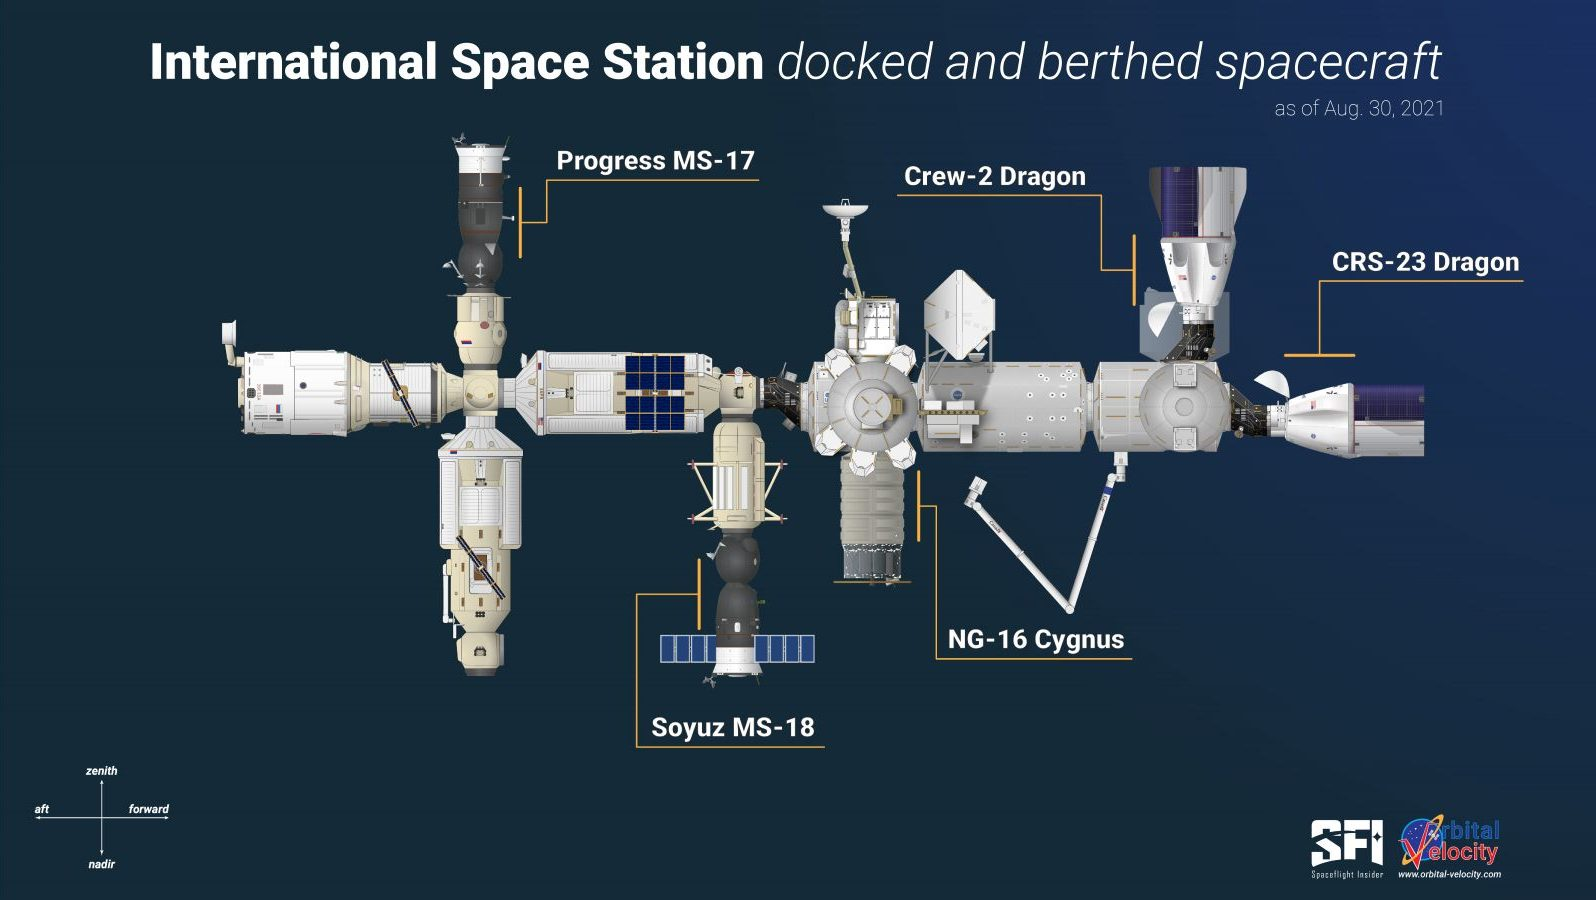 The docking configuration of the ISS as of CRS-23's docking on Aug. 30, 2021. Credit: Derek Richardson / Spaceflight Insider / Orbital Velocity